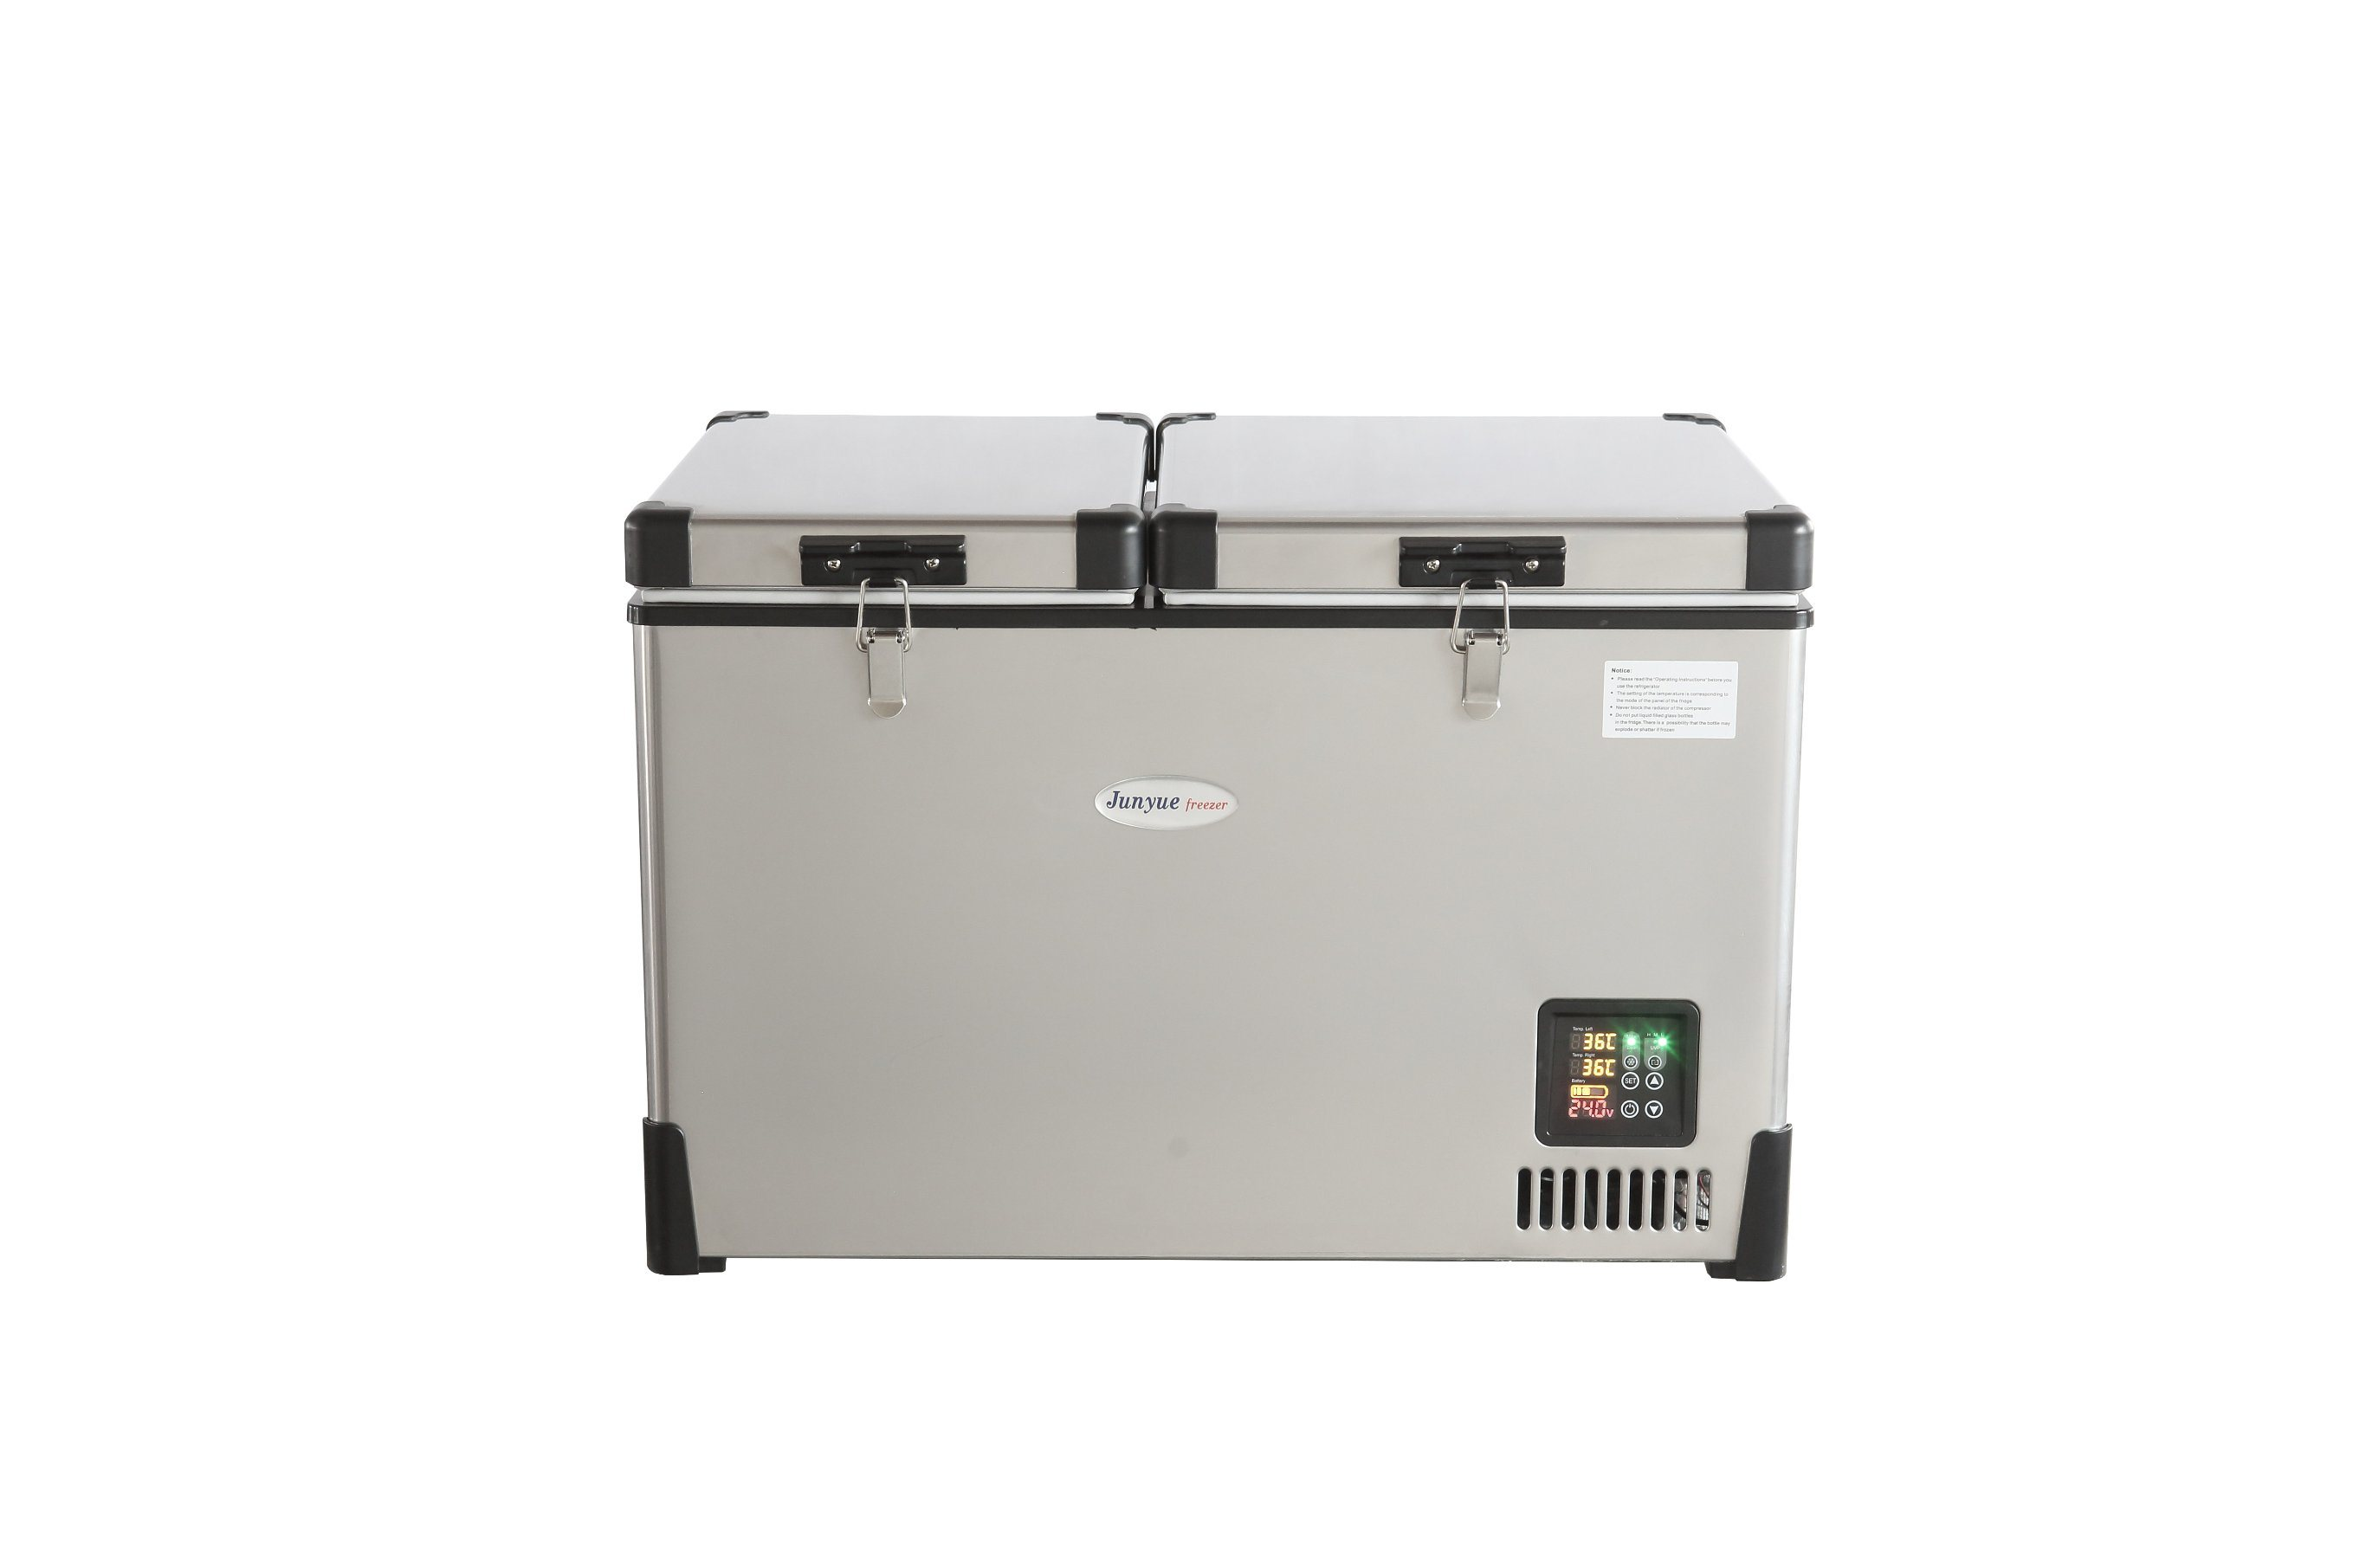 Scd-50L 12/24V DC Stainless Steel Doubletemperature Chest Freezer Curved Bottom